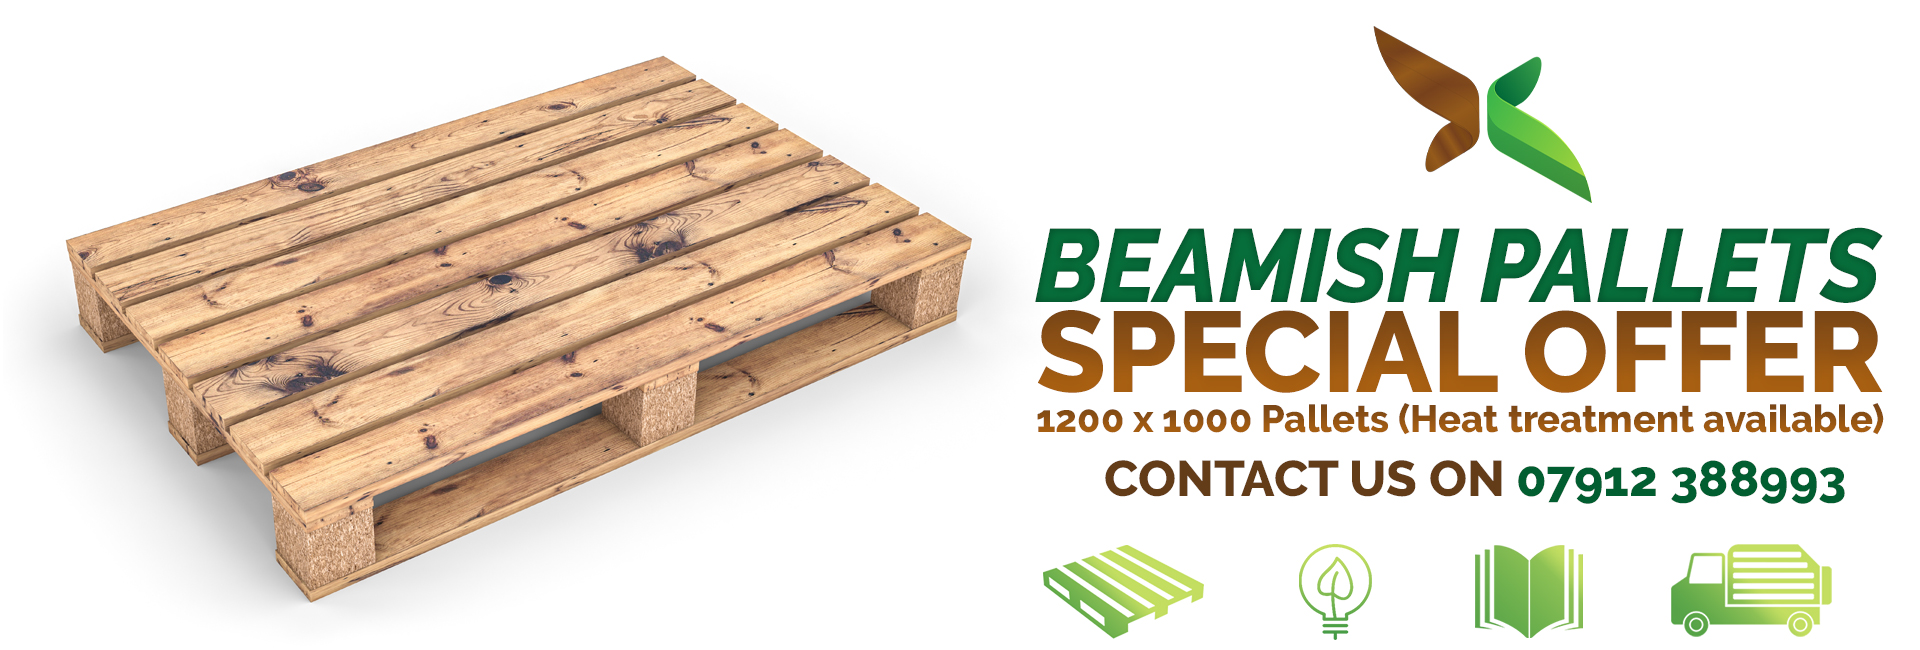 SPECIAL-OFFER-BEAMISH